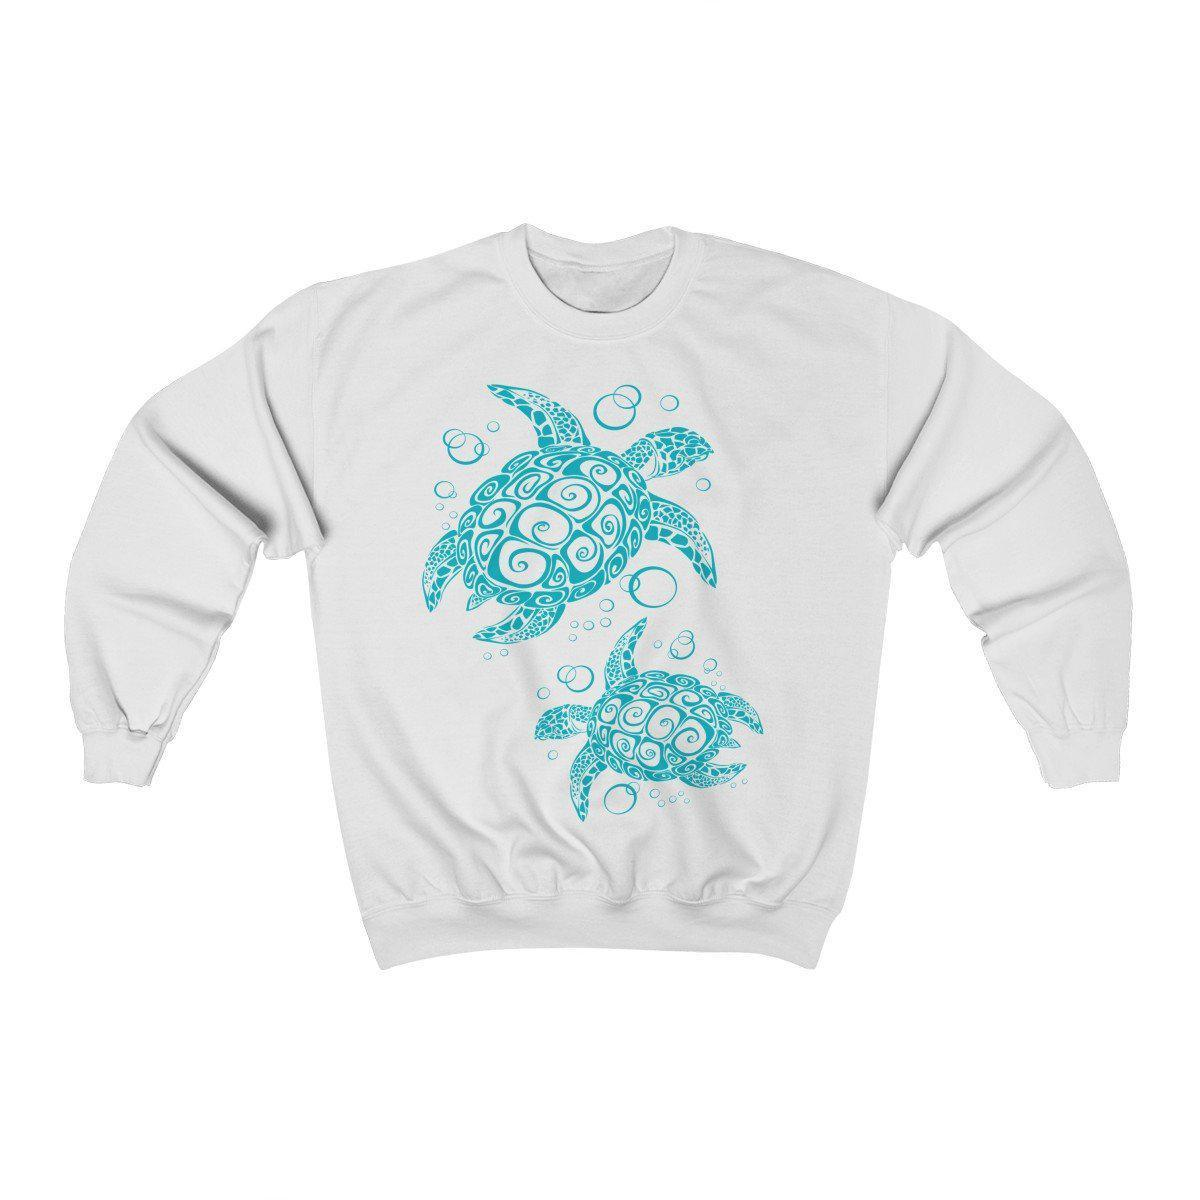 The Original Turtle Twist Sweatshirt